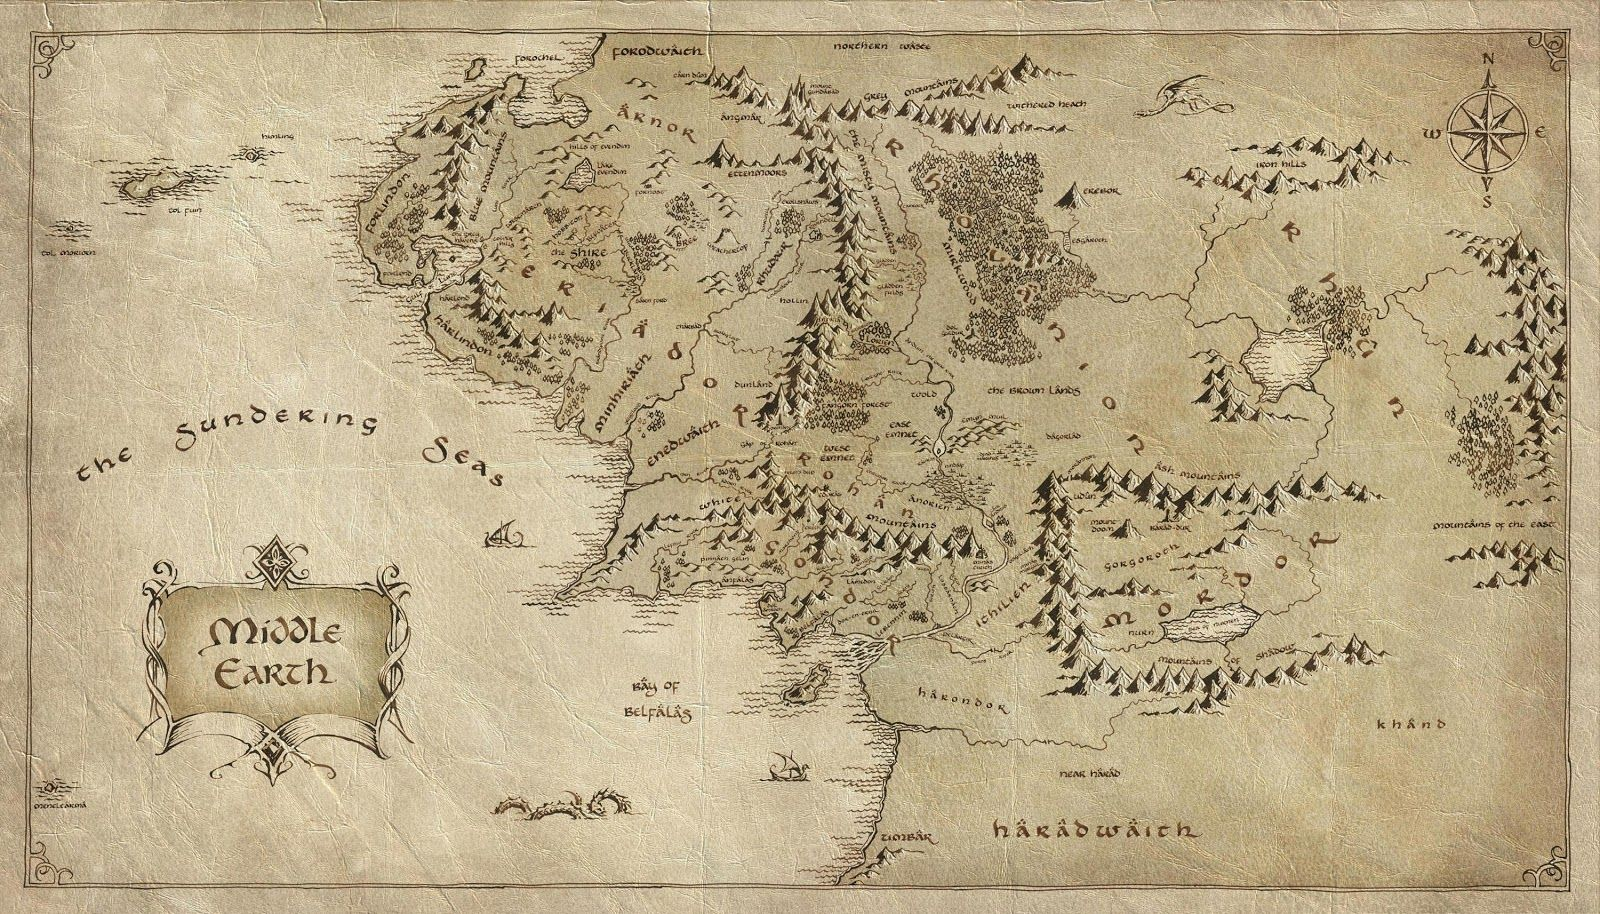 Maps of Middle Earth First Age | map to show the expanse of Middle